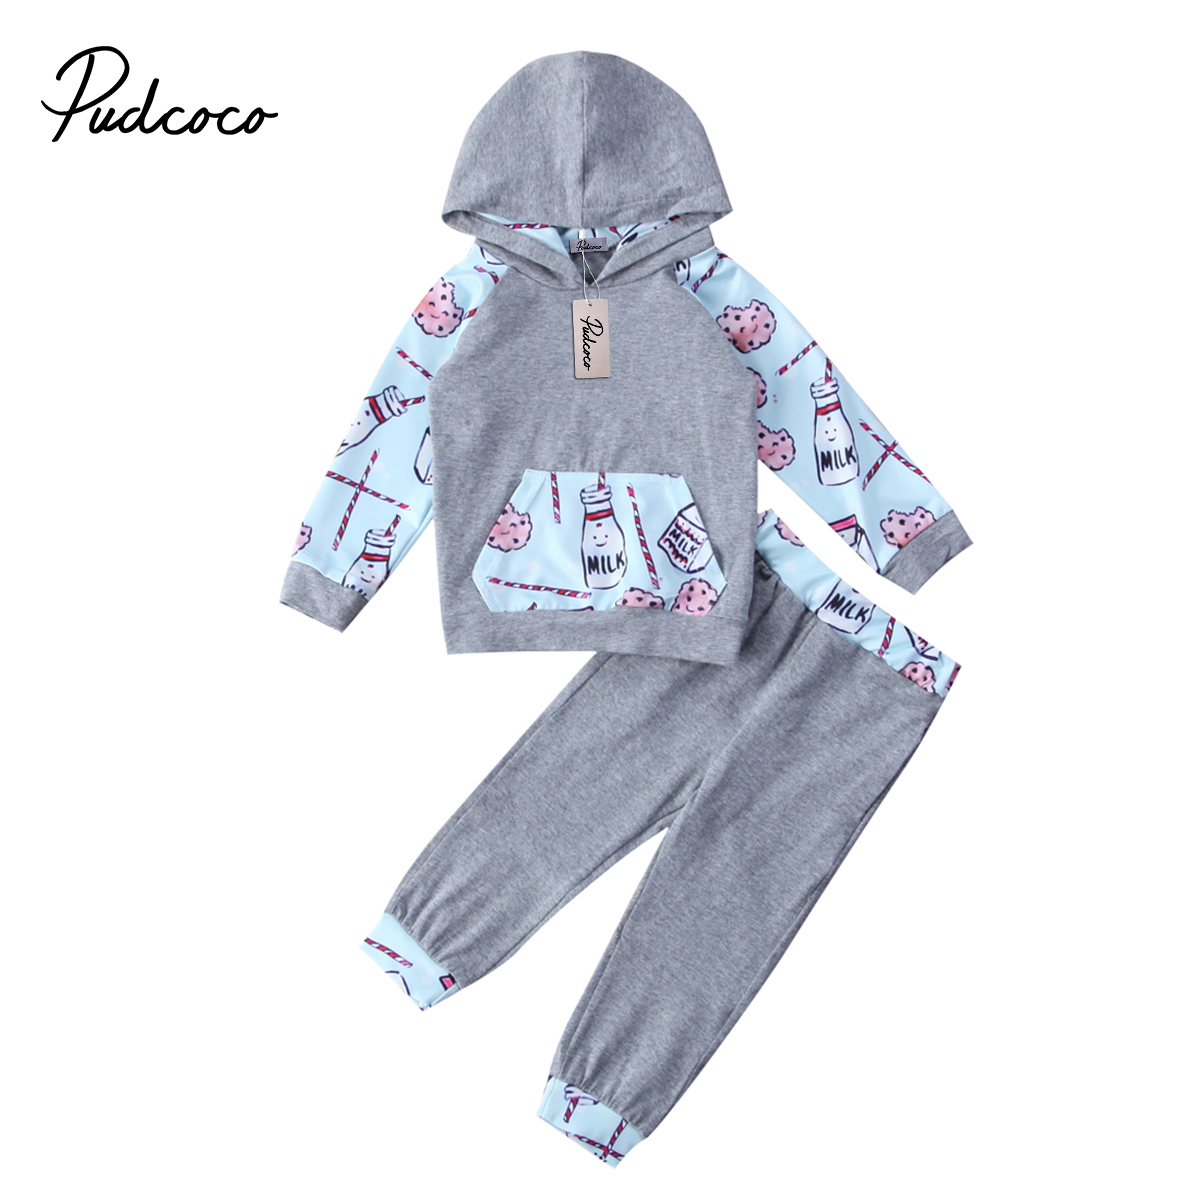 2Pcs Baby Clothing Toddler Baby Boys Girls Tops Long sleeve Print Hoodie Sweatshirt Tops Pants Home Outfits Set Clothes 0-2T